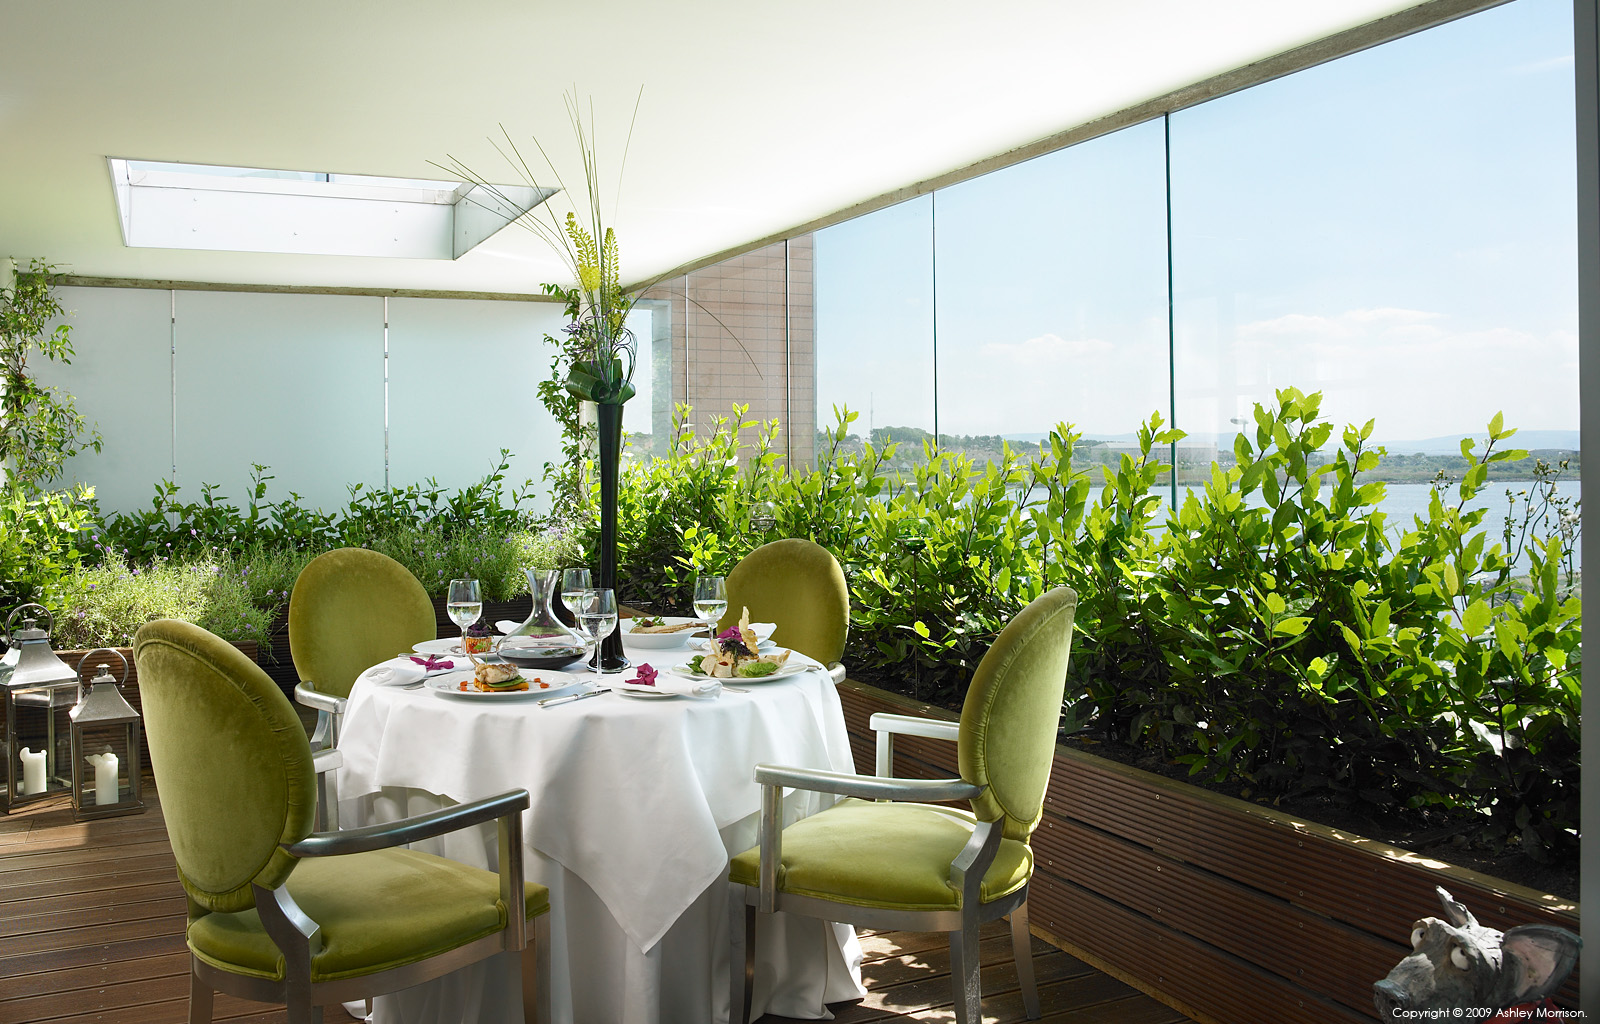 Open air dining area in the Linda Evangelista suite at The g hotel in Galway by Ashley Morrison.